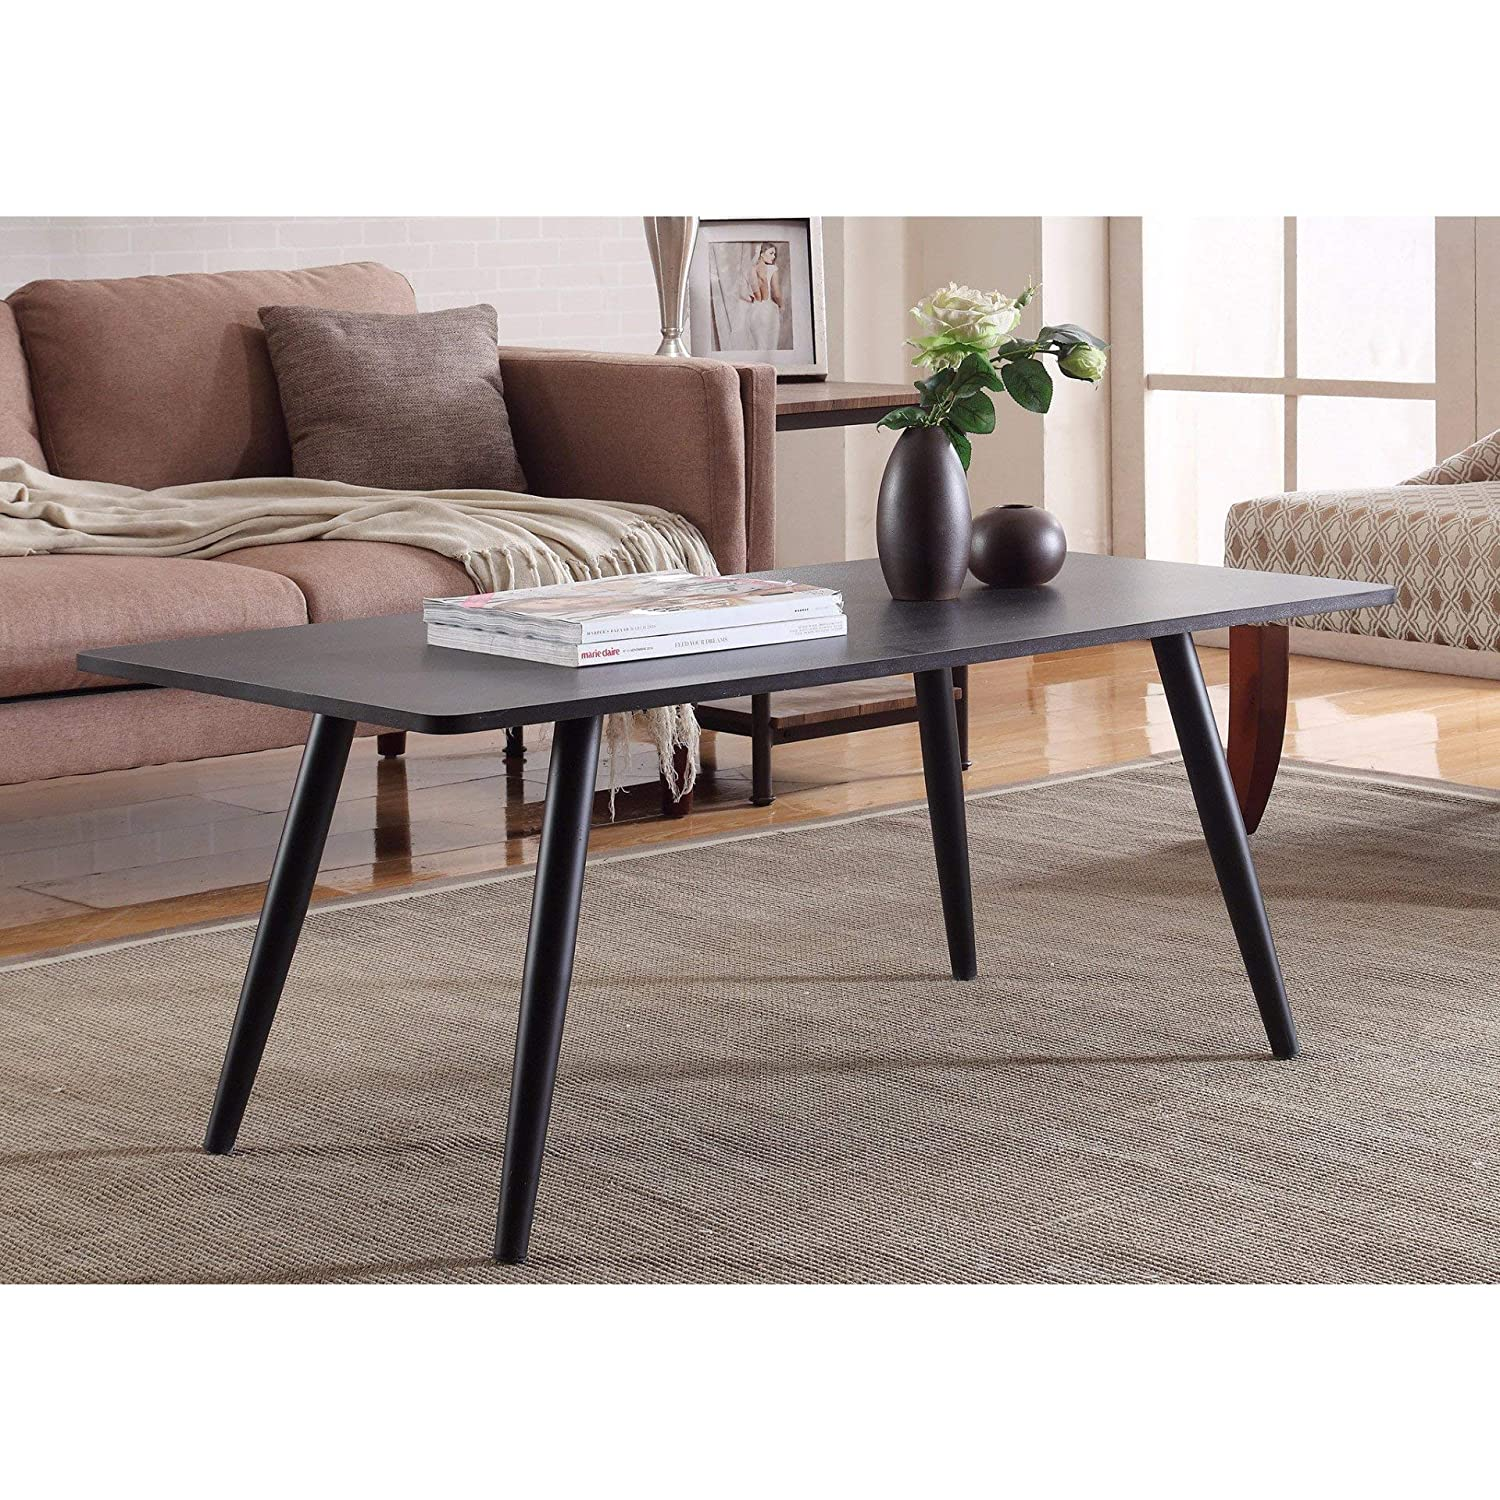 Amazon com madison home modern and simply designed coffee table white kitchen dining